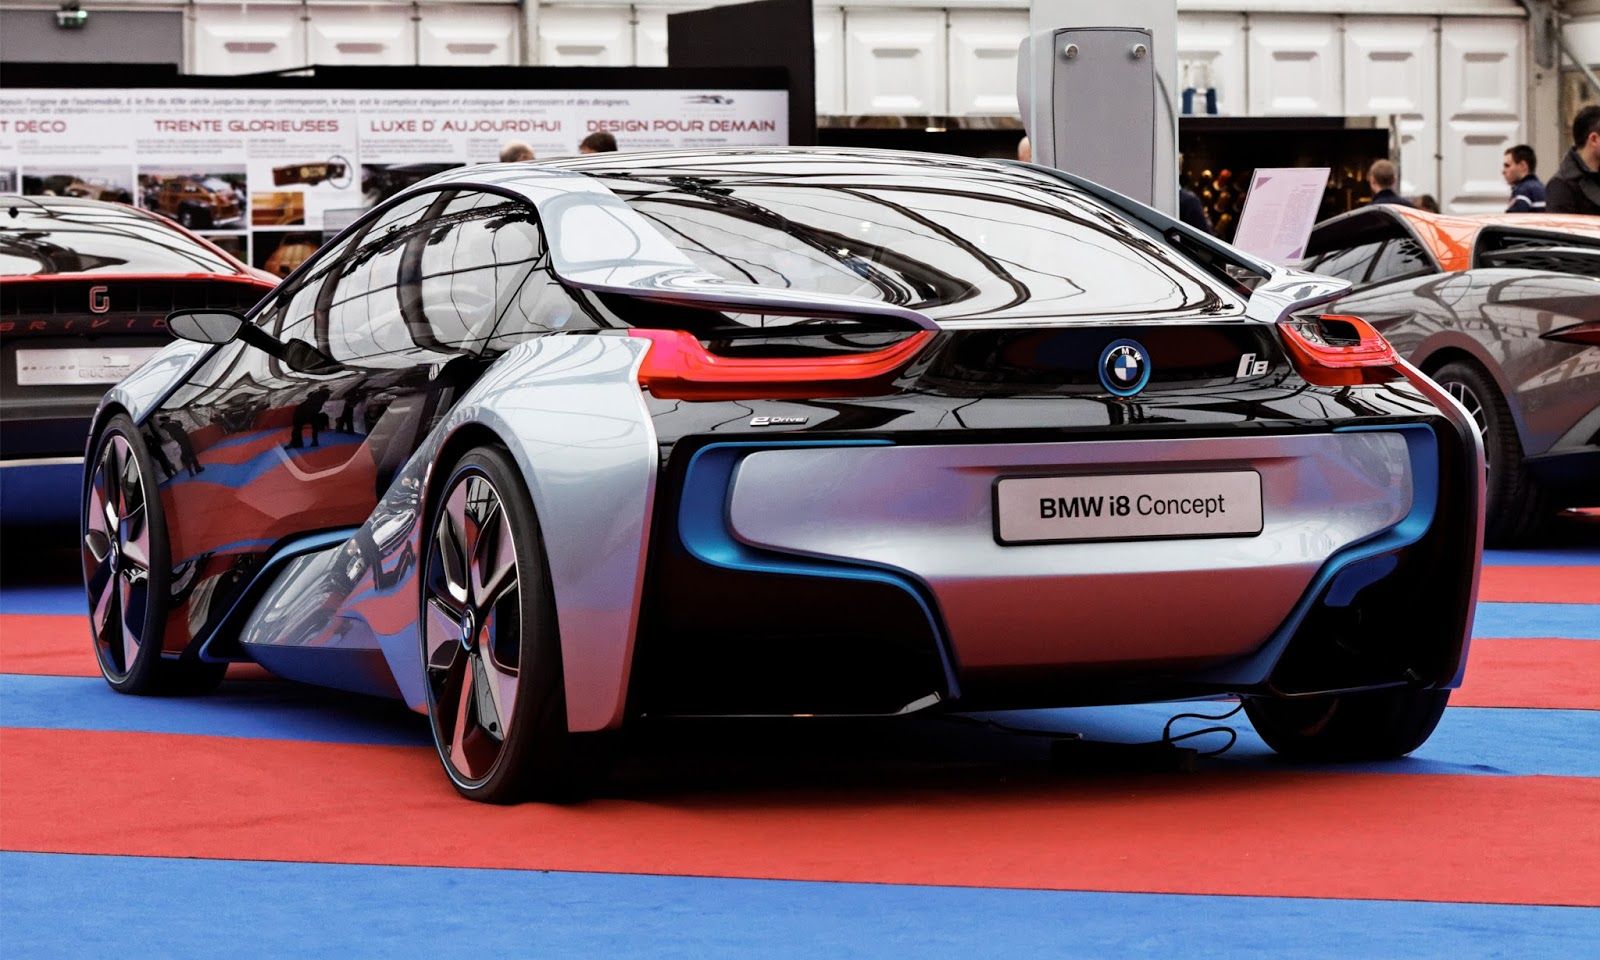 Cinema Wallpapers With Quotes Bmw I8 Hd Wallpapers Hd Wallpapers High Definition